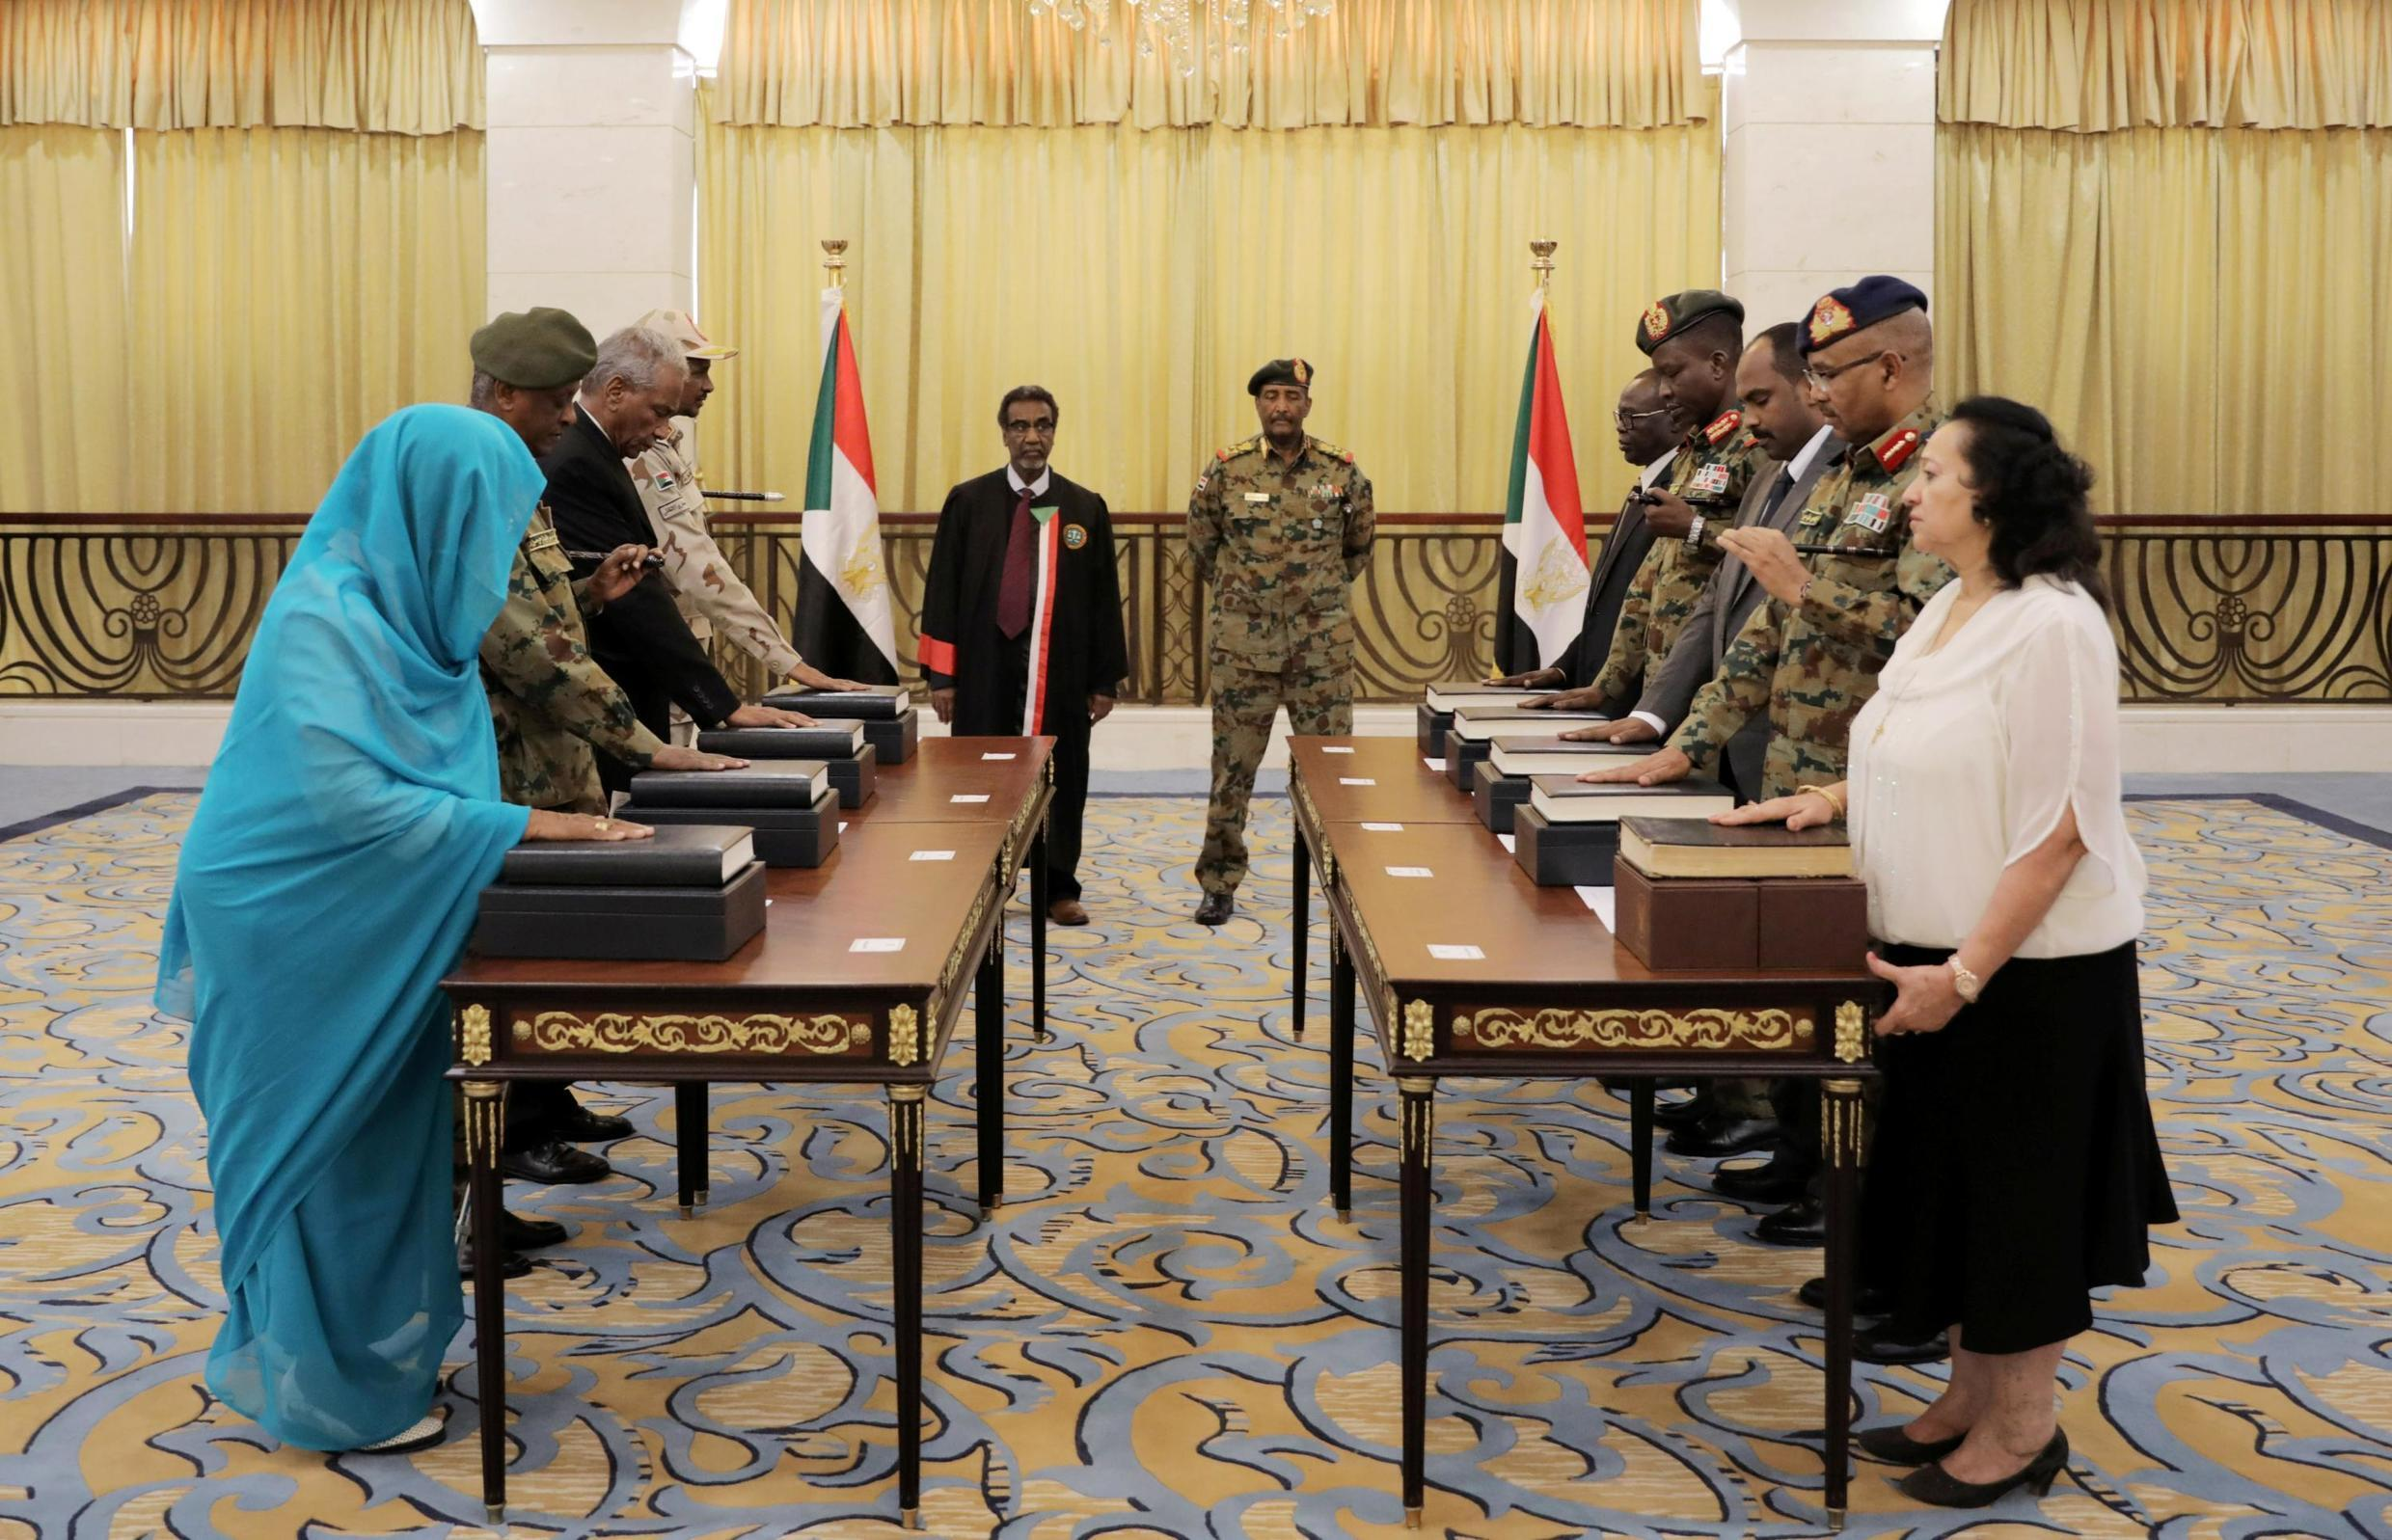 Lieutenant General Abdel Fattah Al-Abdelrahman Burhan looks on as military and civilian members of Sudan's new ruling body, the Sovereign Council, are sworn in at the presidential palace in Khartoum, 21 August 2019